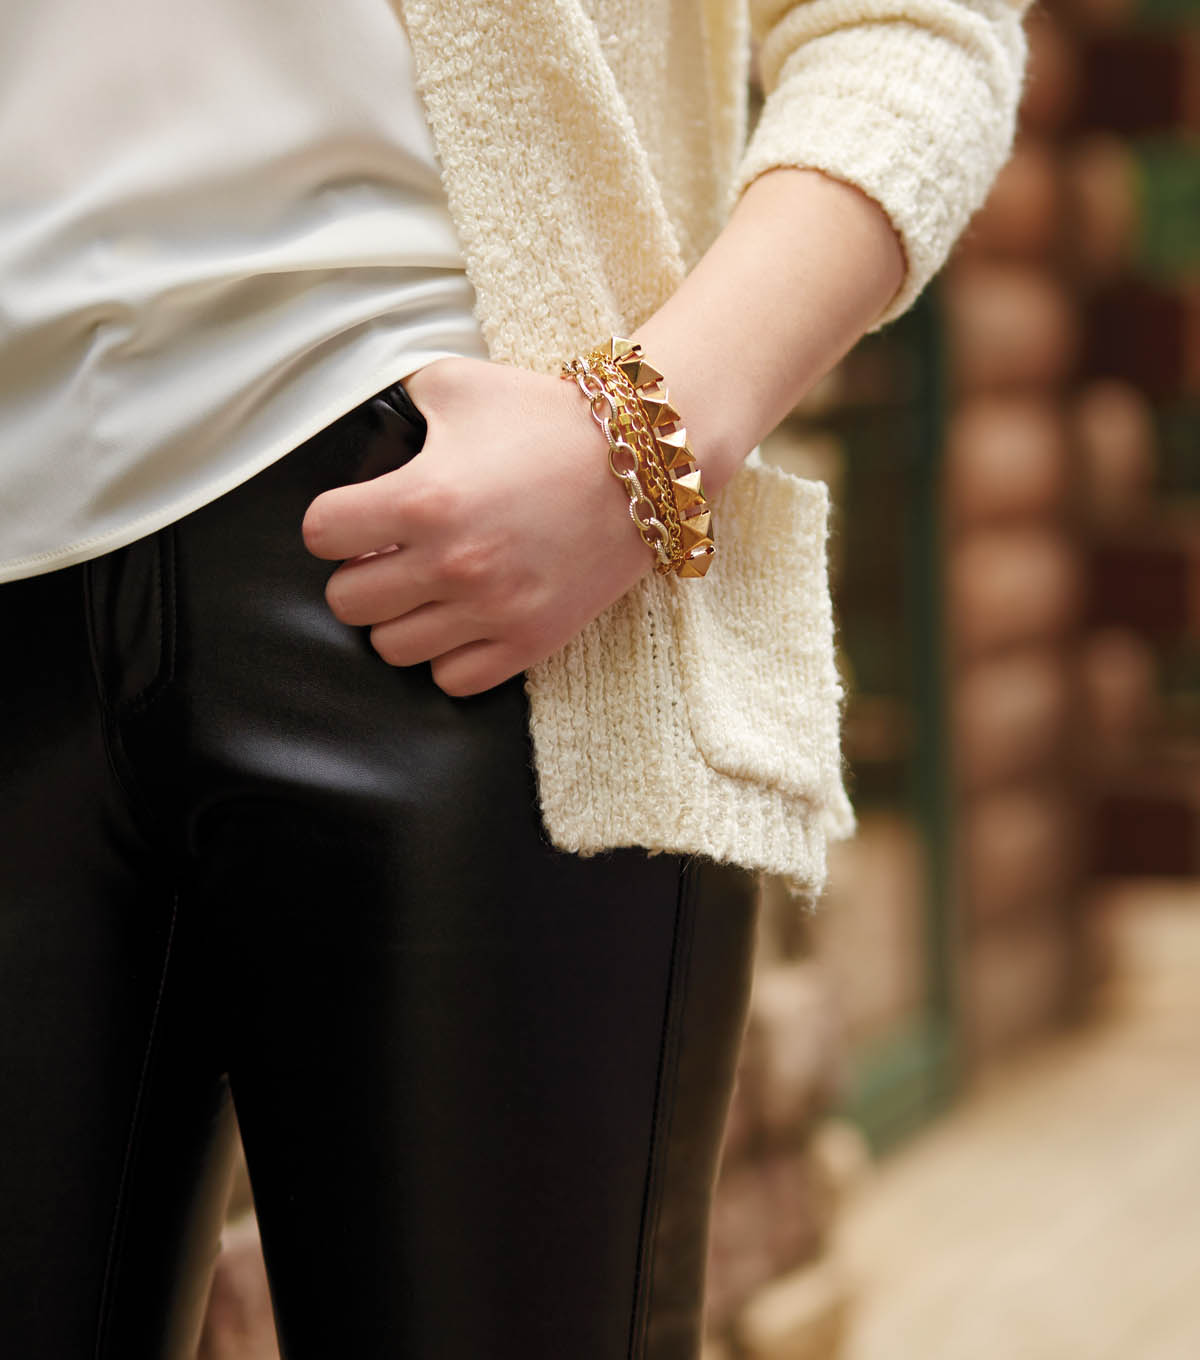 Get the Look: Tips for Sewing and Accessorizing with Faux Leather